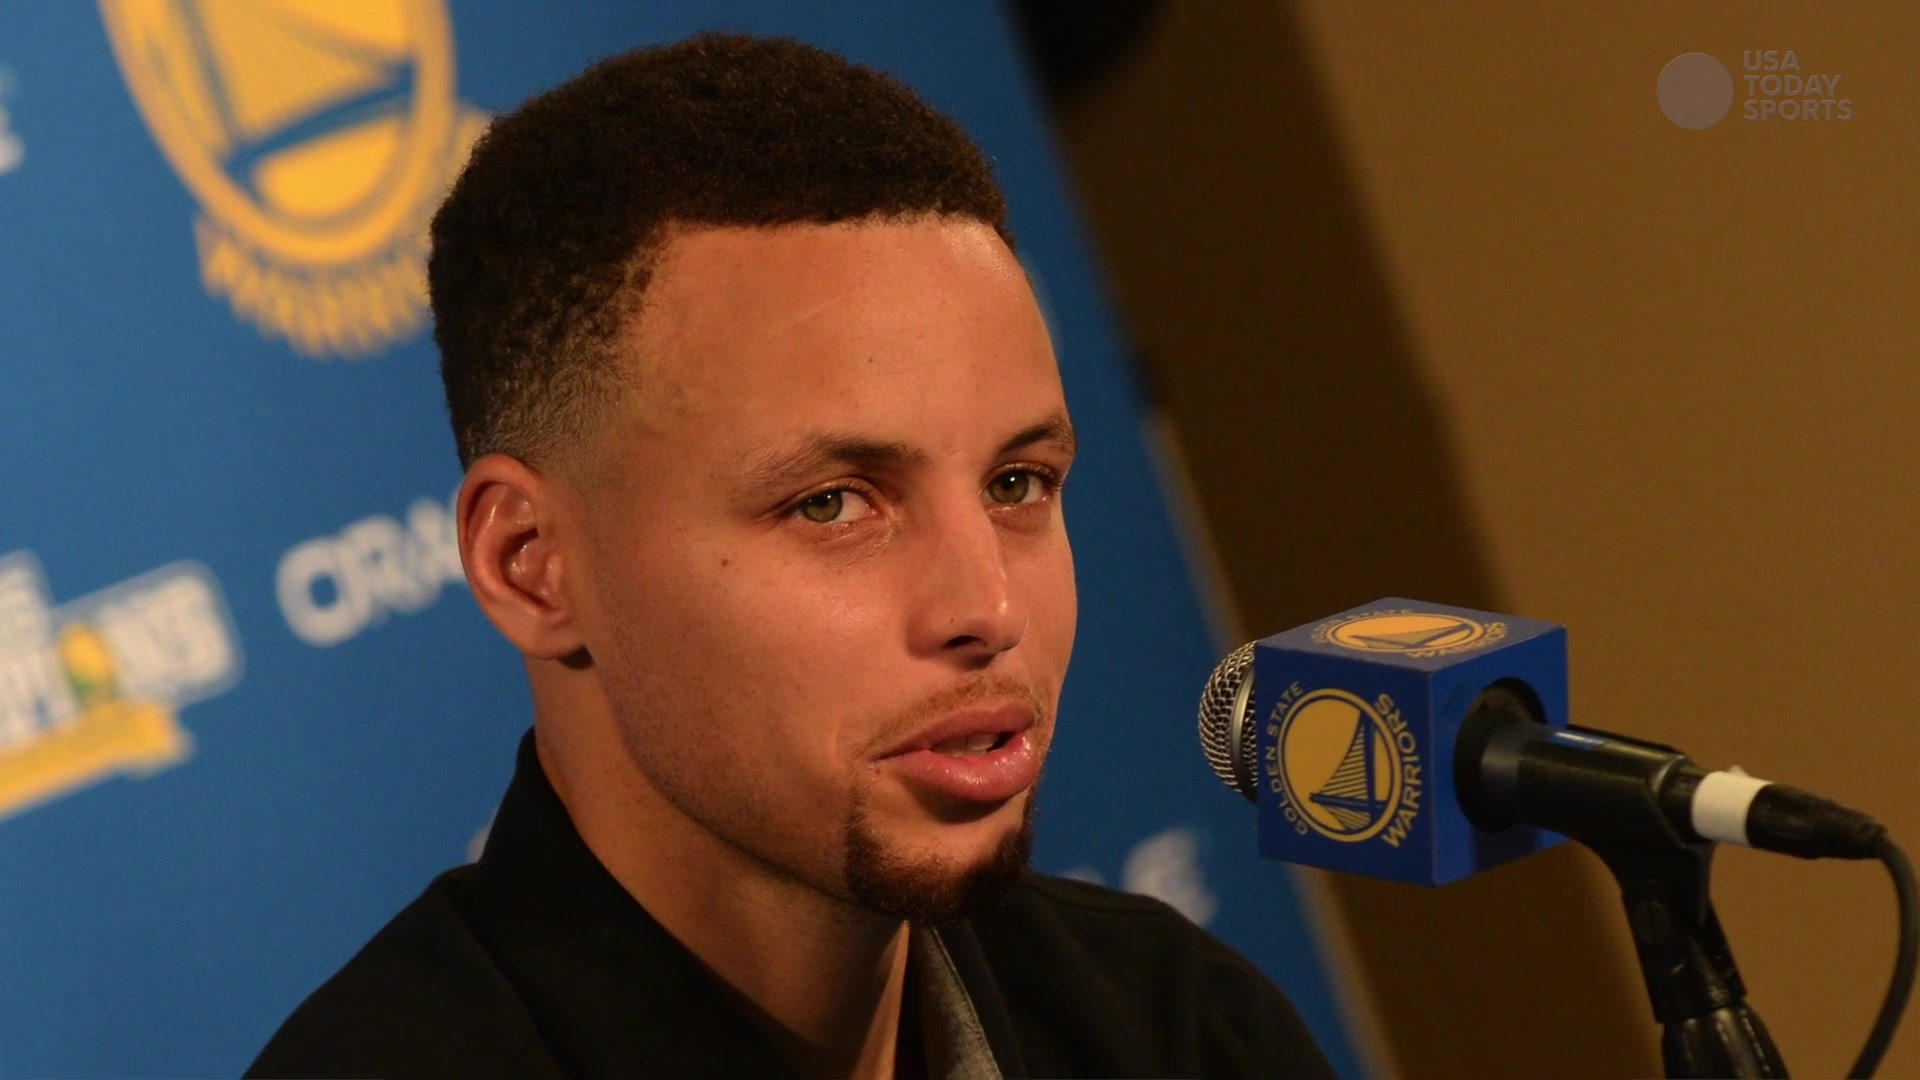 Warriors Win, but Steph Curry Still Questionable